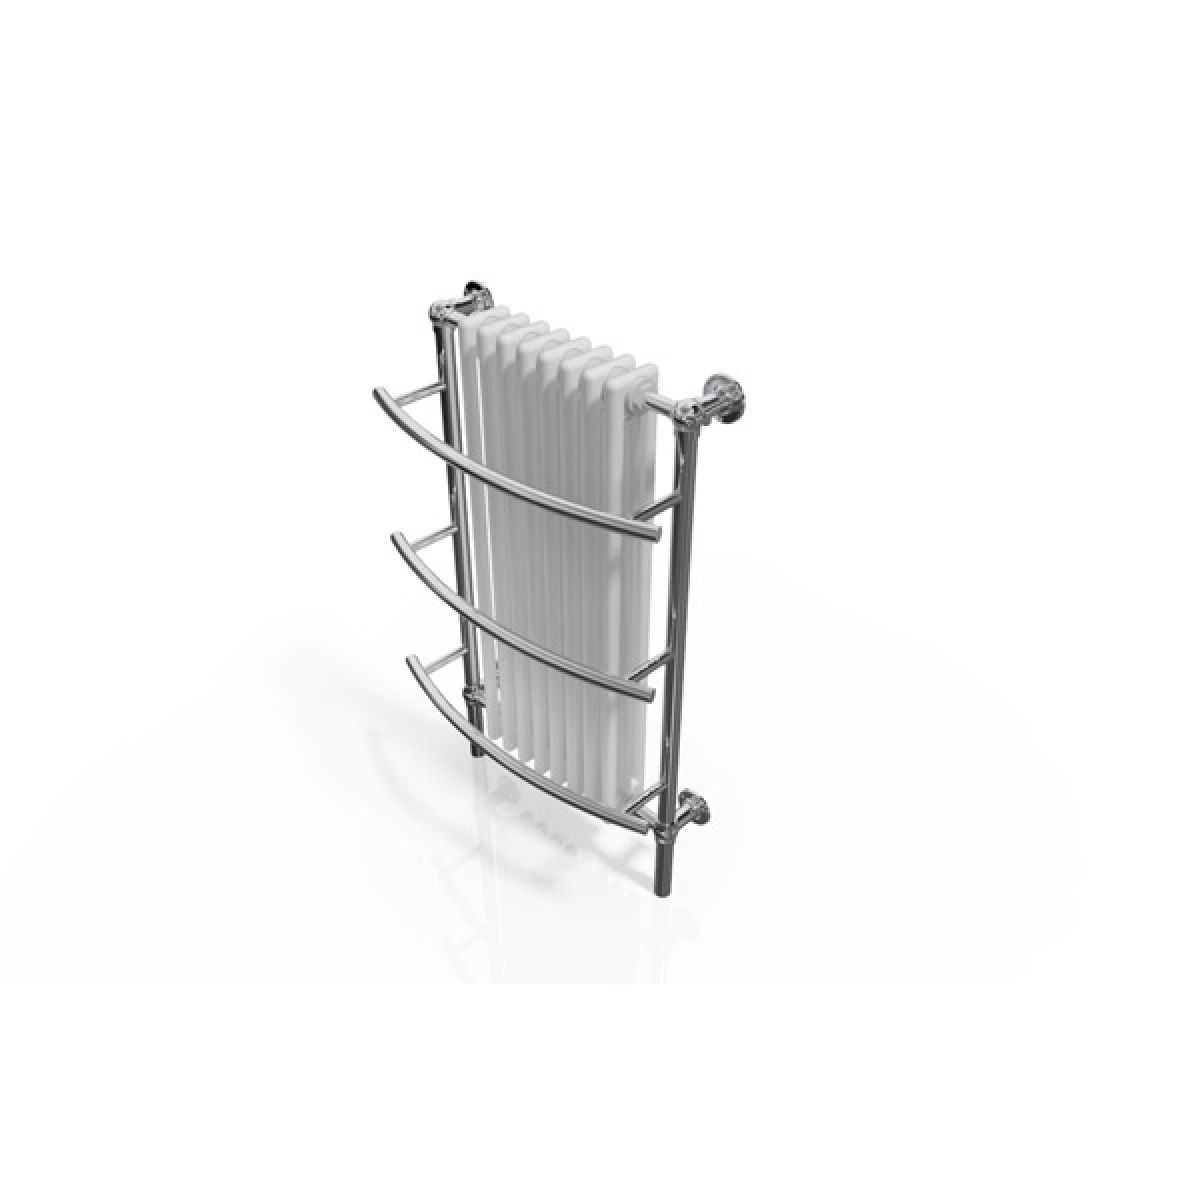 Cassellie Traditional Radiator with Towel Rail 630 x 1000mm